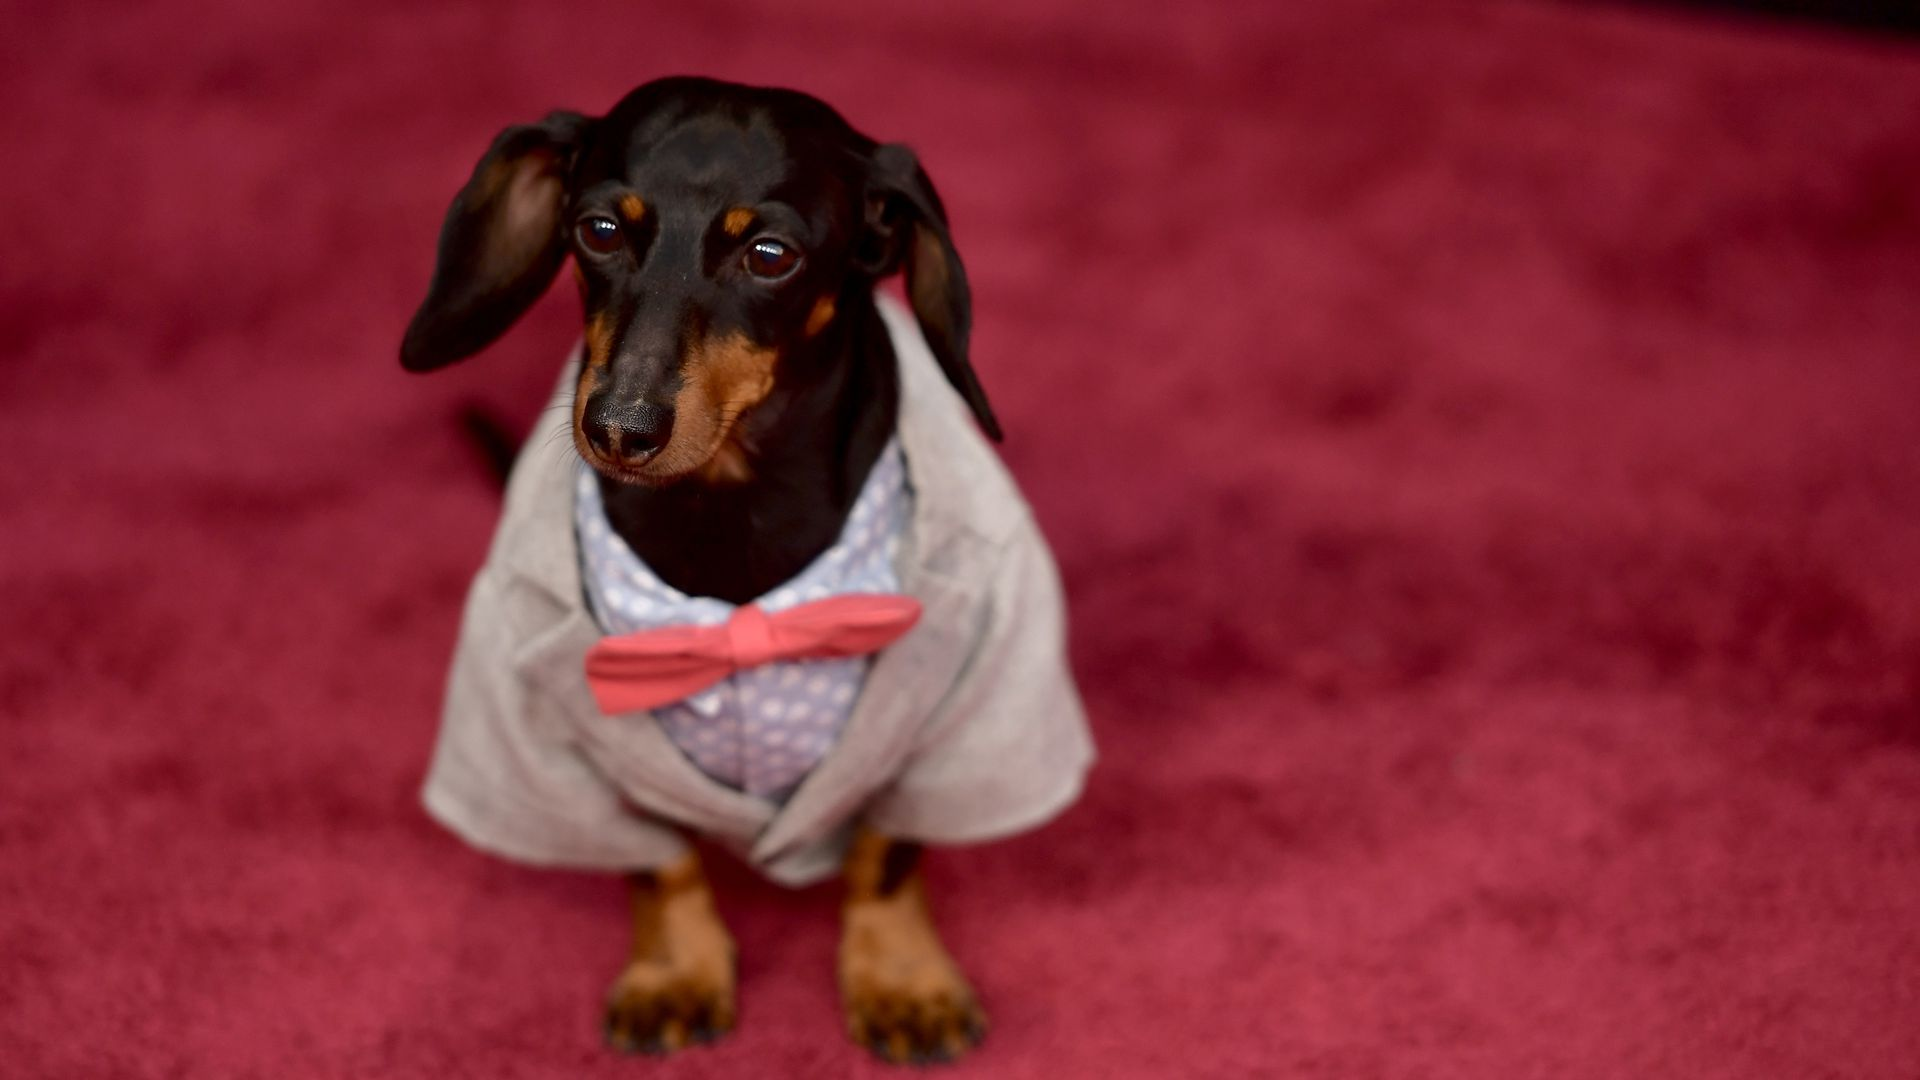 Dachshund squad has epic pool party set to OMI's 'Cheerleader'